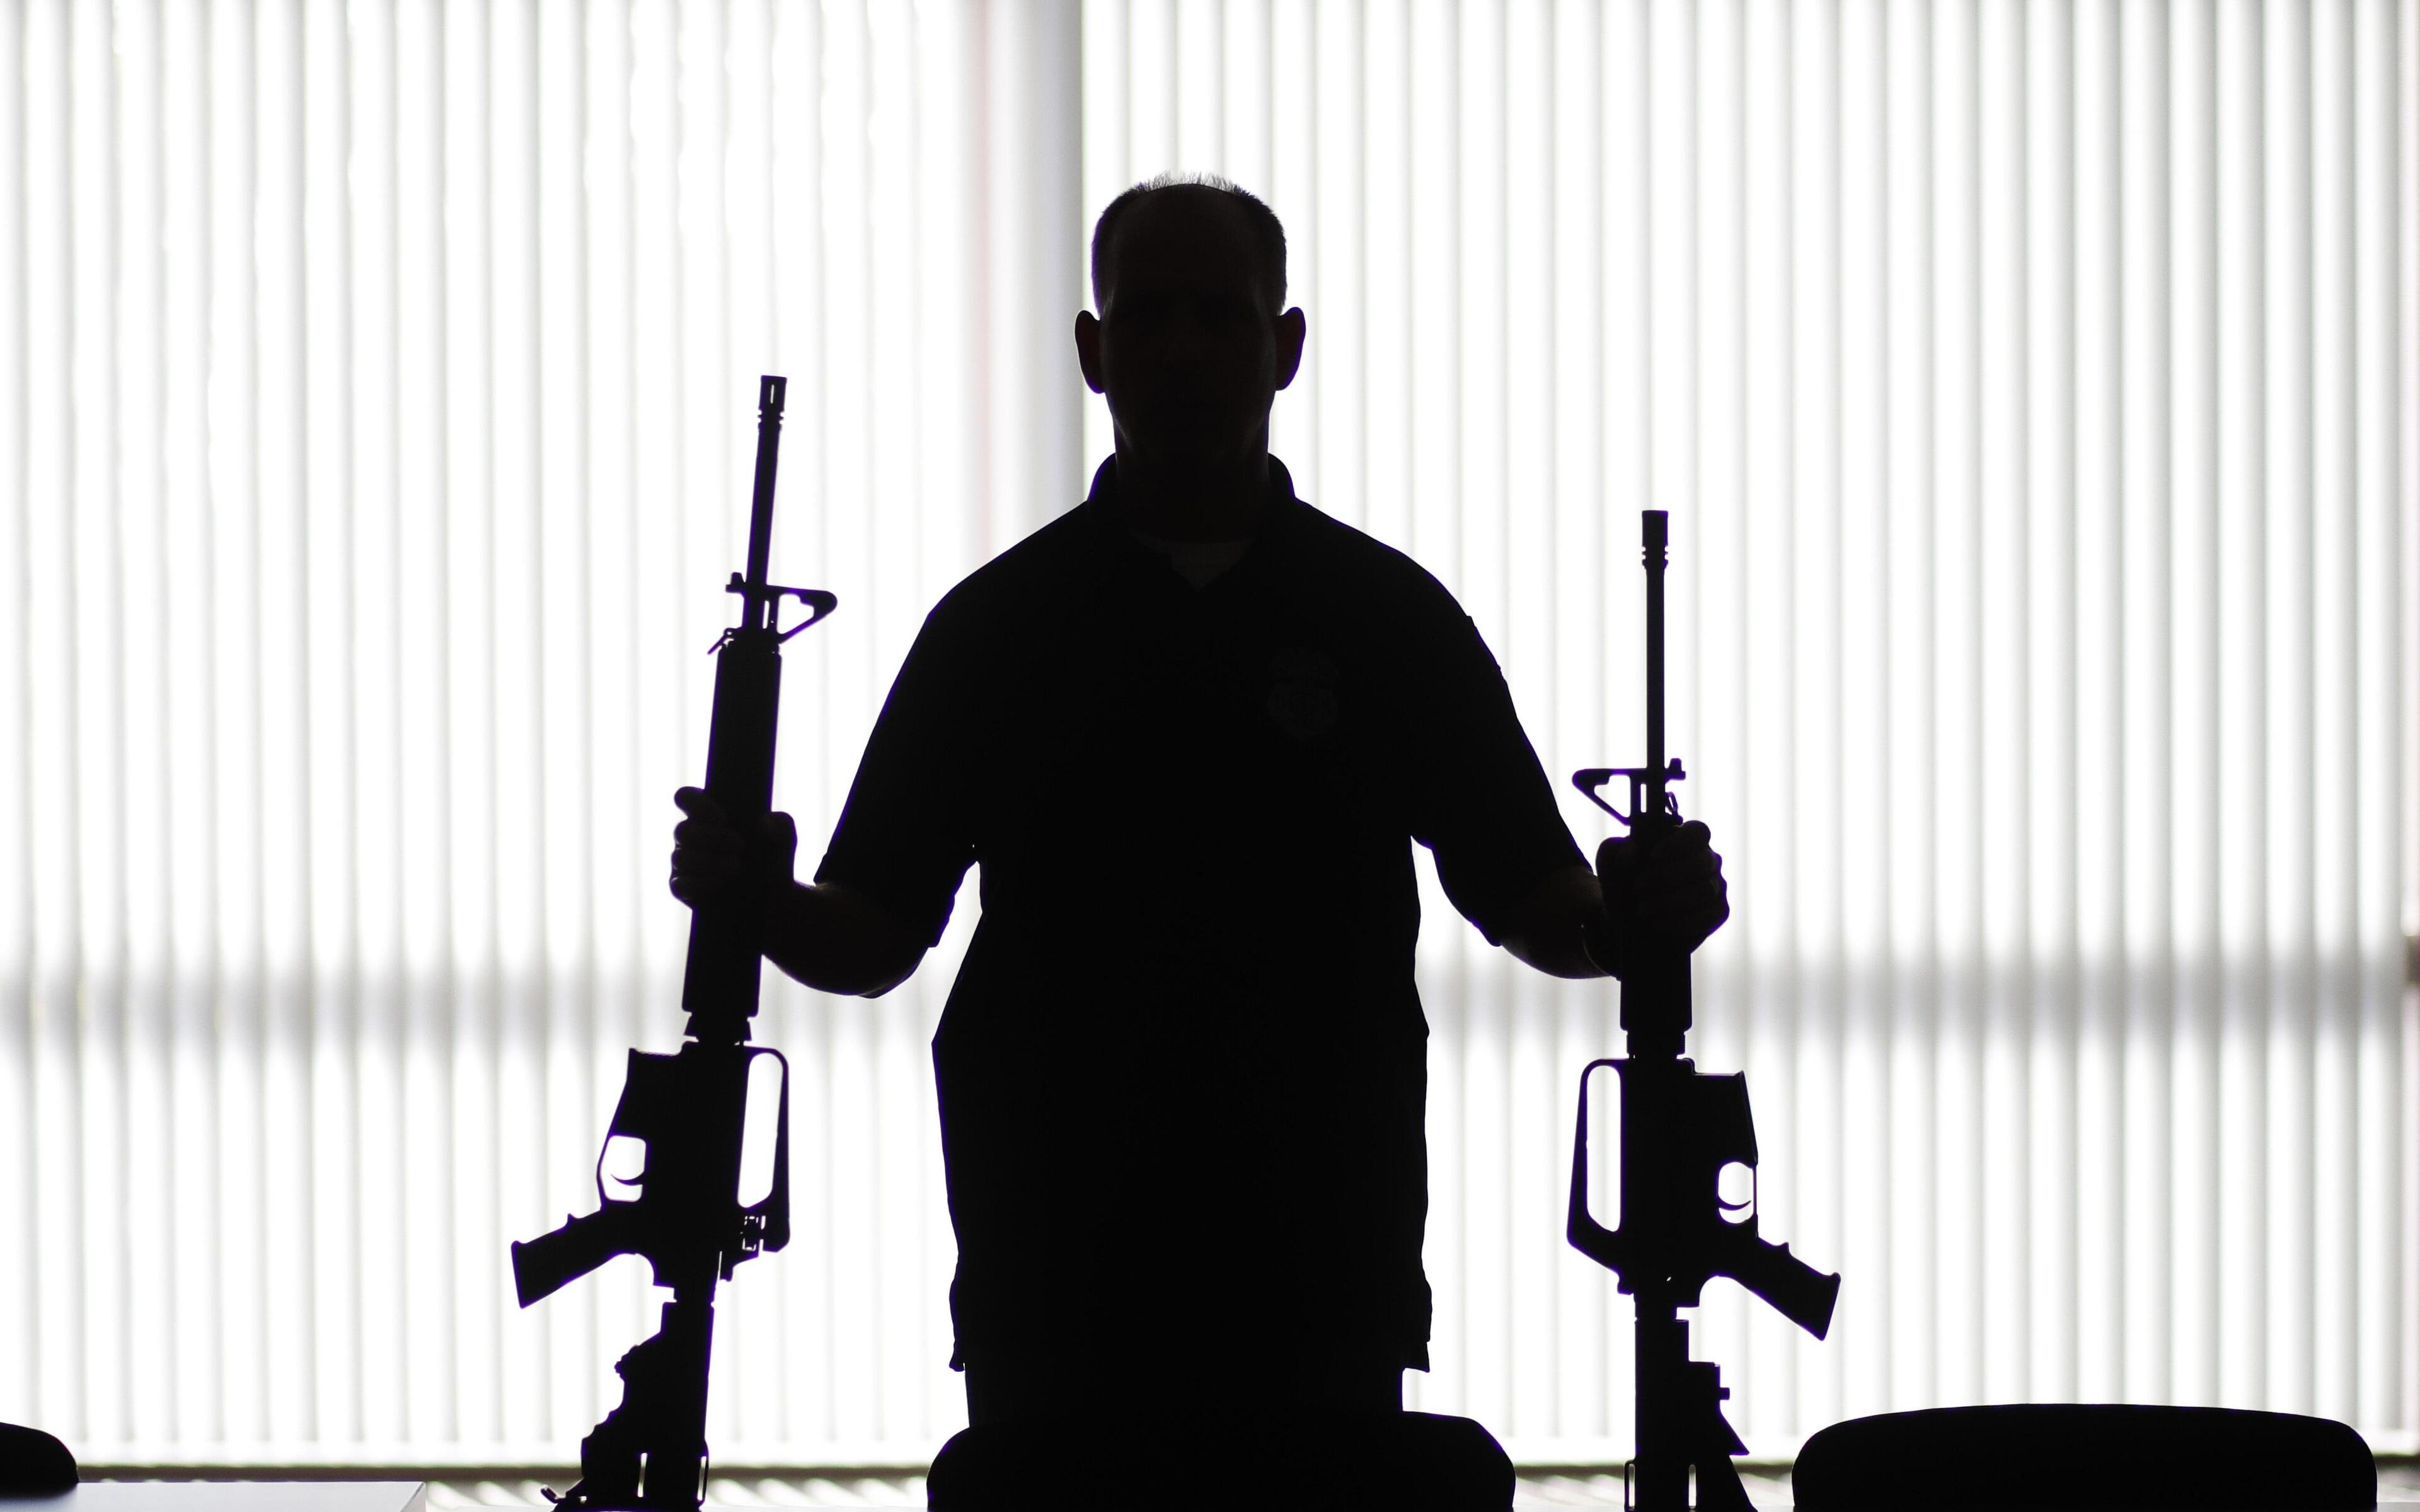 man-with-two-guns-x5.jpg